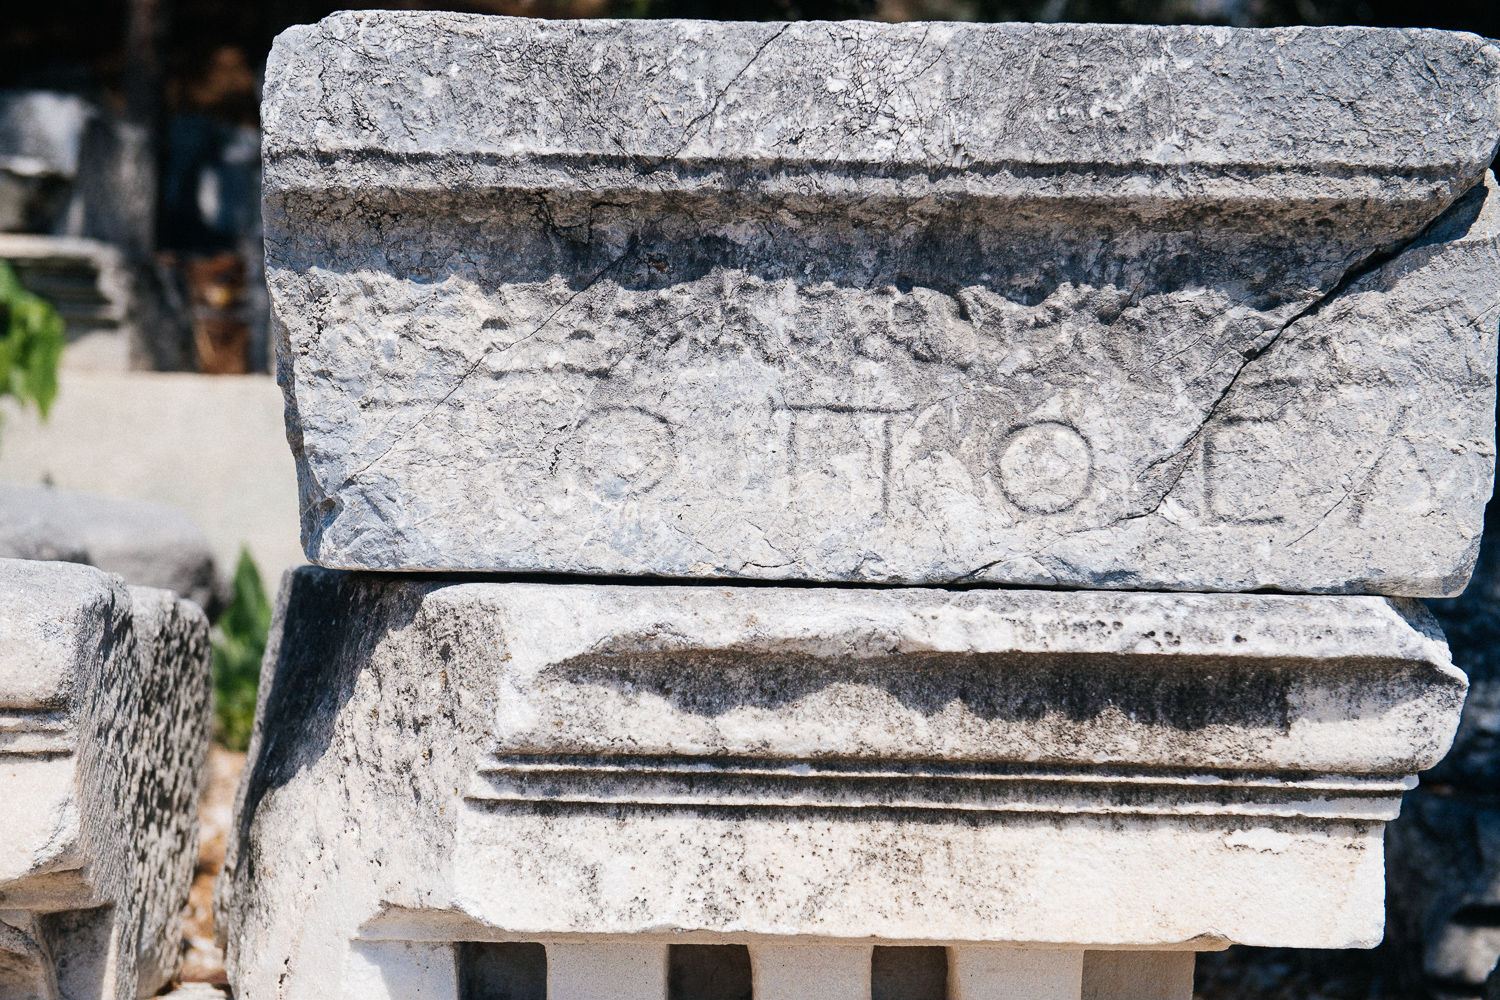 "I don't know greek, ancient or modern. but it seems to me that ""τοποελ"" is written on this stone, which means absolutely nothing. If you know greek, please let me know what it is. It may be a partial as well."